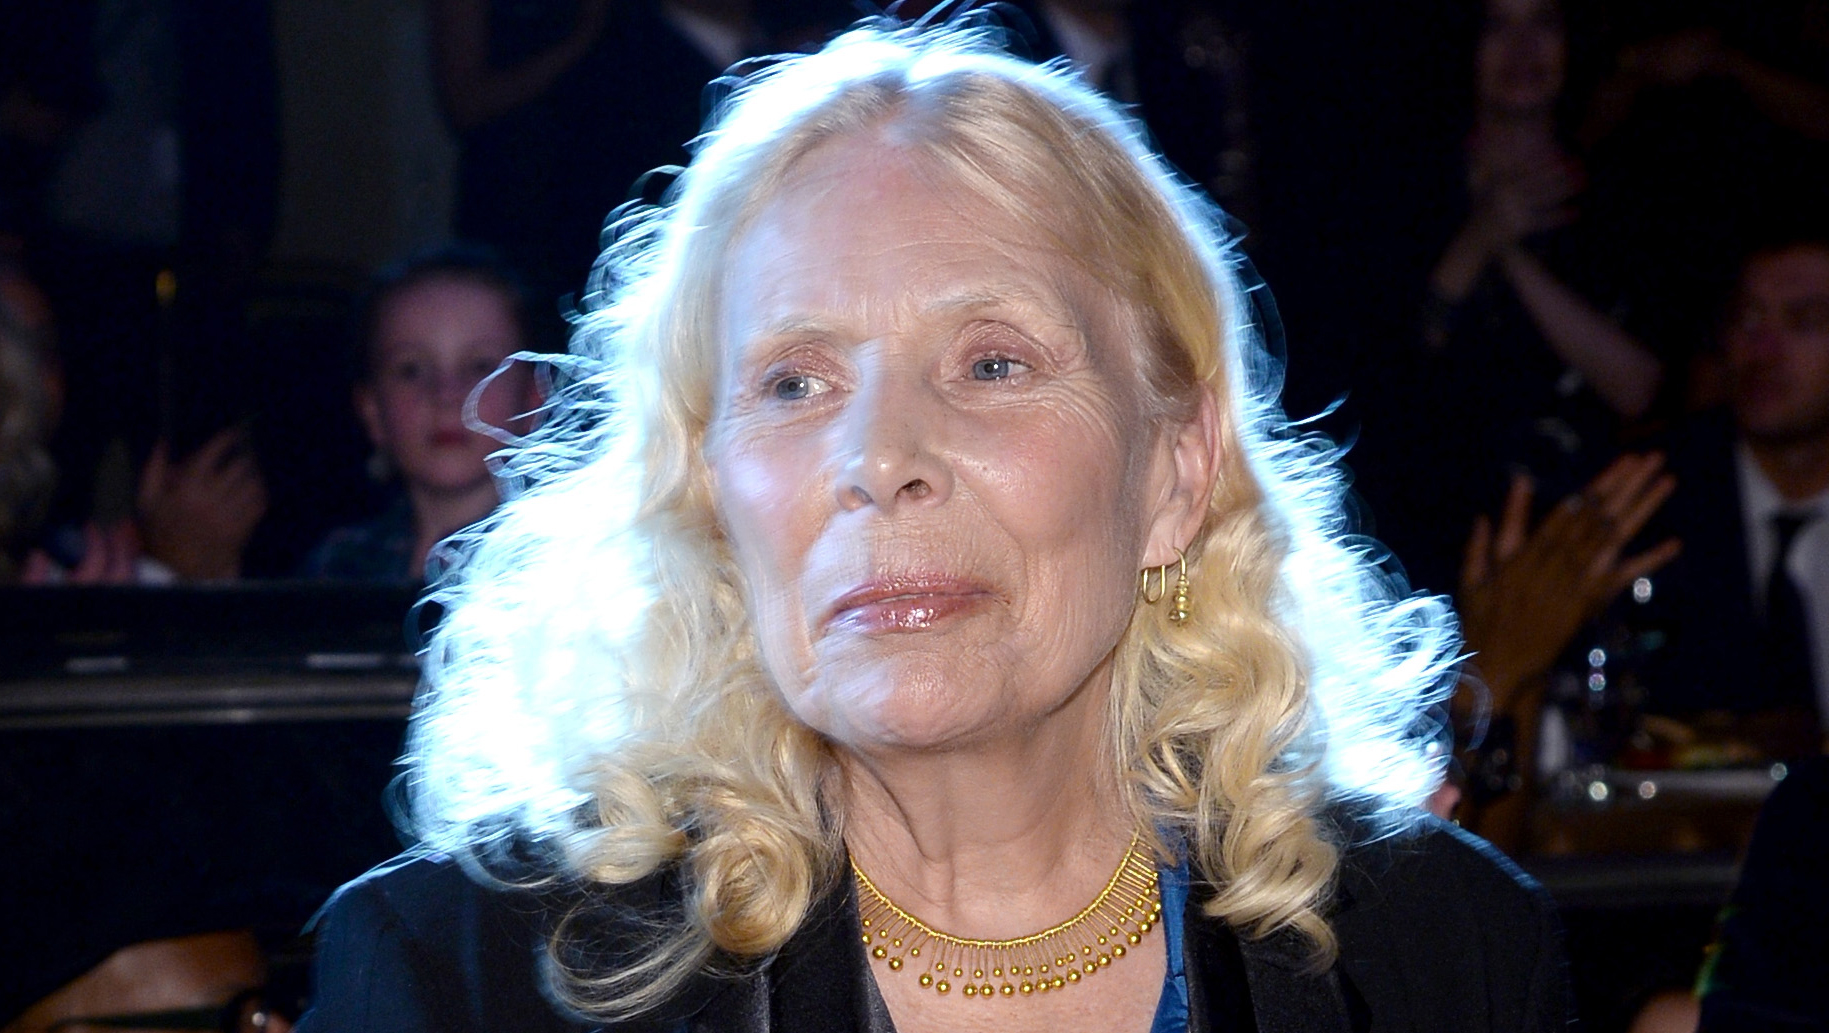 Joni Mitchell and the mystery of Morgellons disease - CBS News